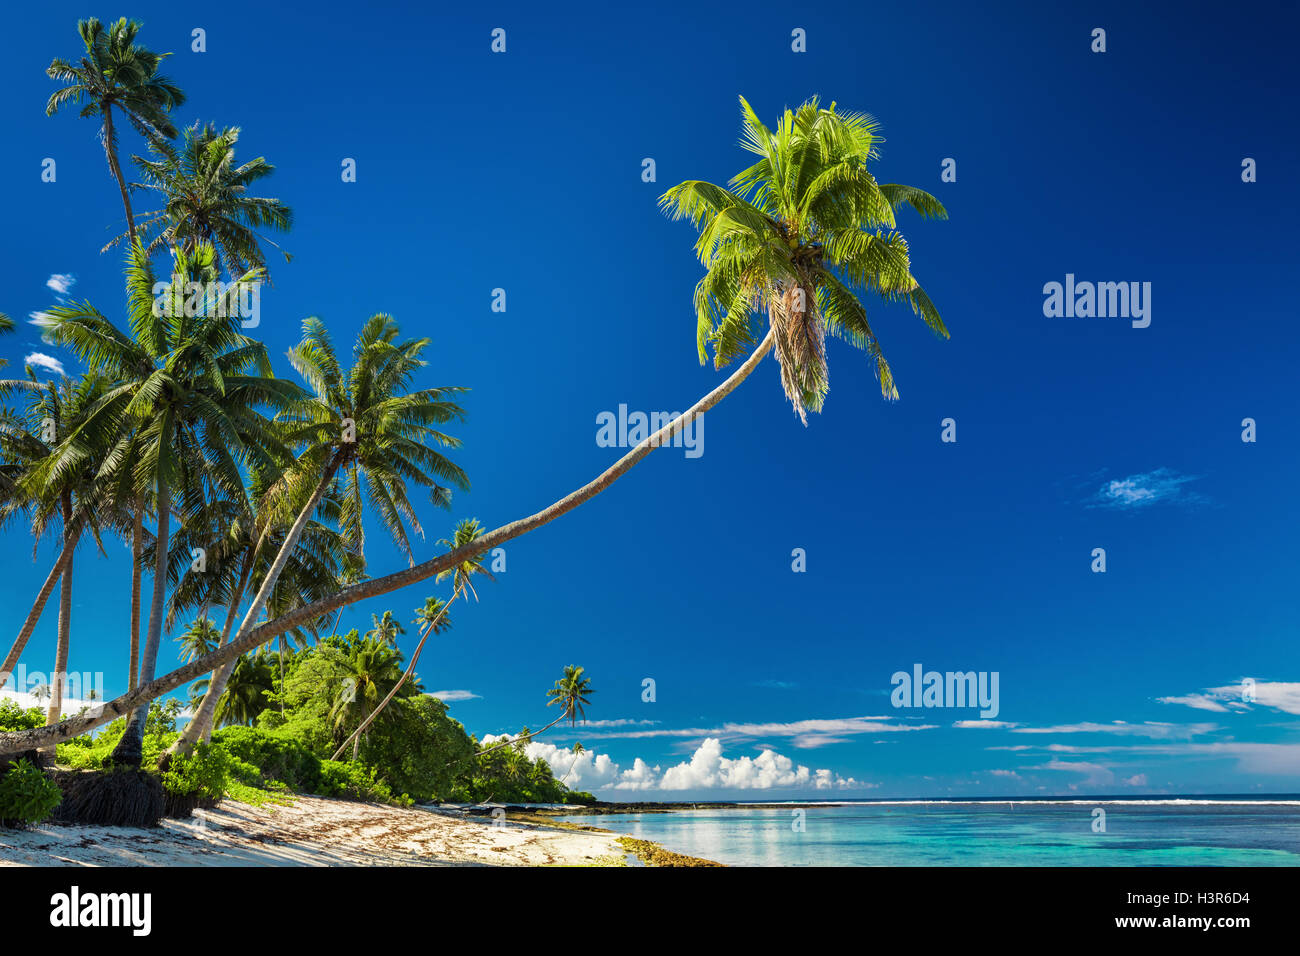 Tropical beach on south side of Samoa Island with coconut palm trees - Stock Image